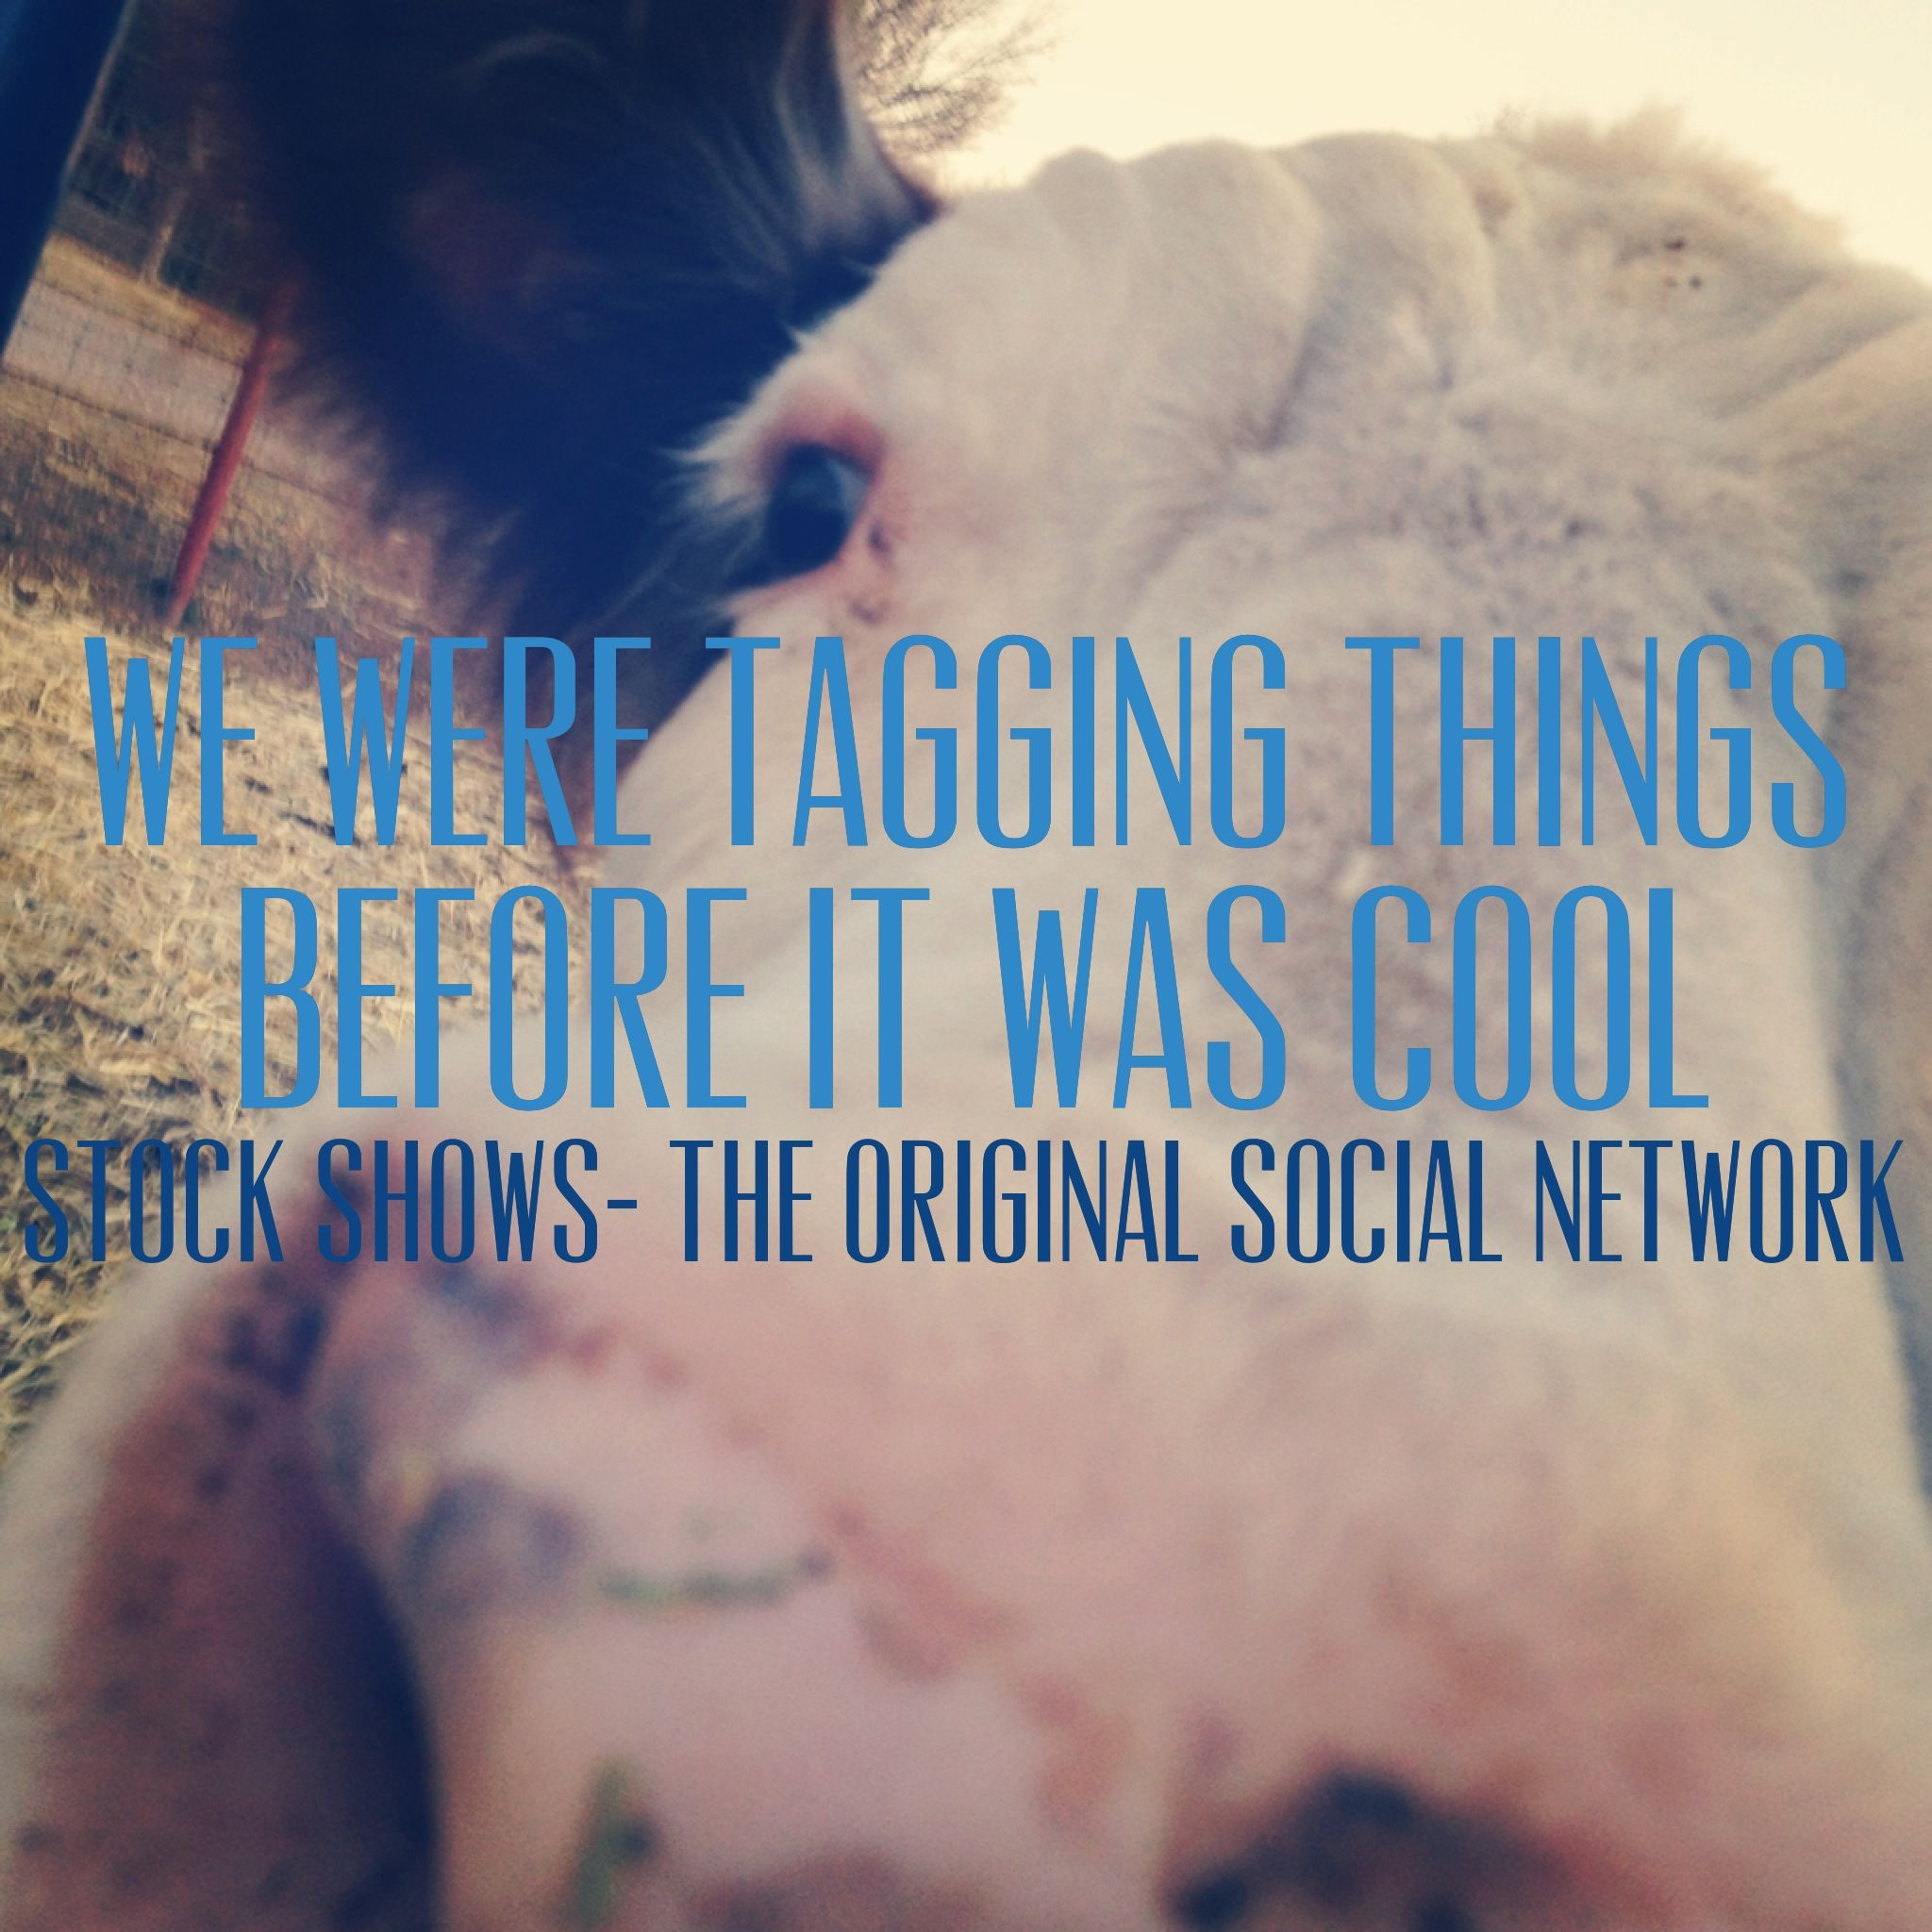 We were tagging things before it was cool | FFA(: | Pinterest ...